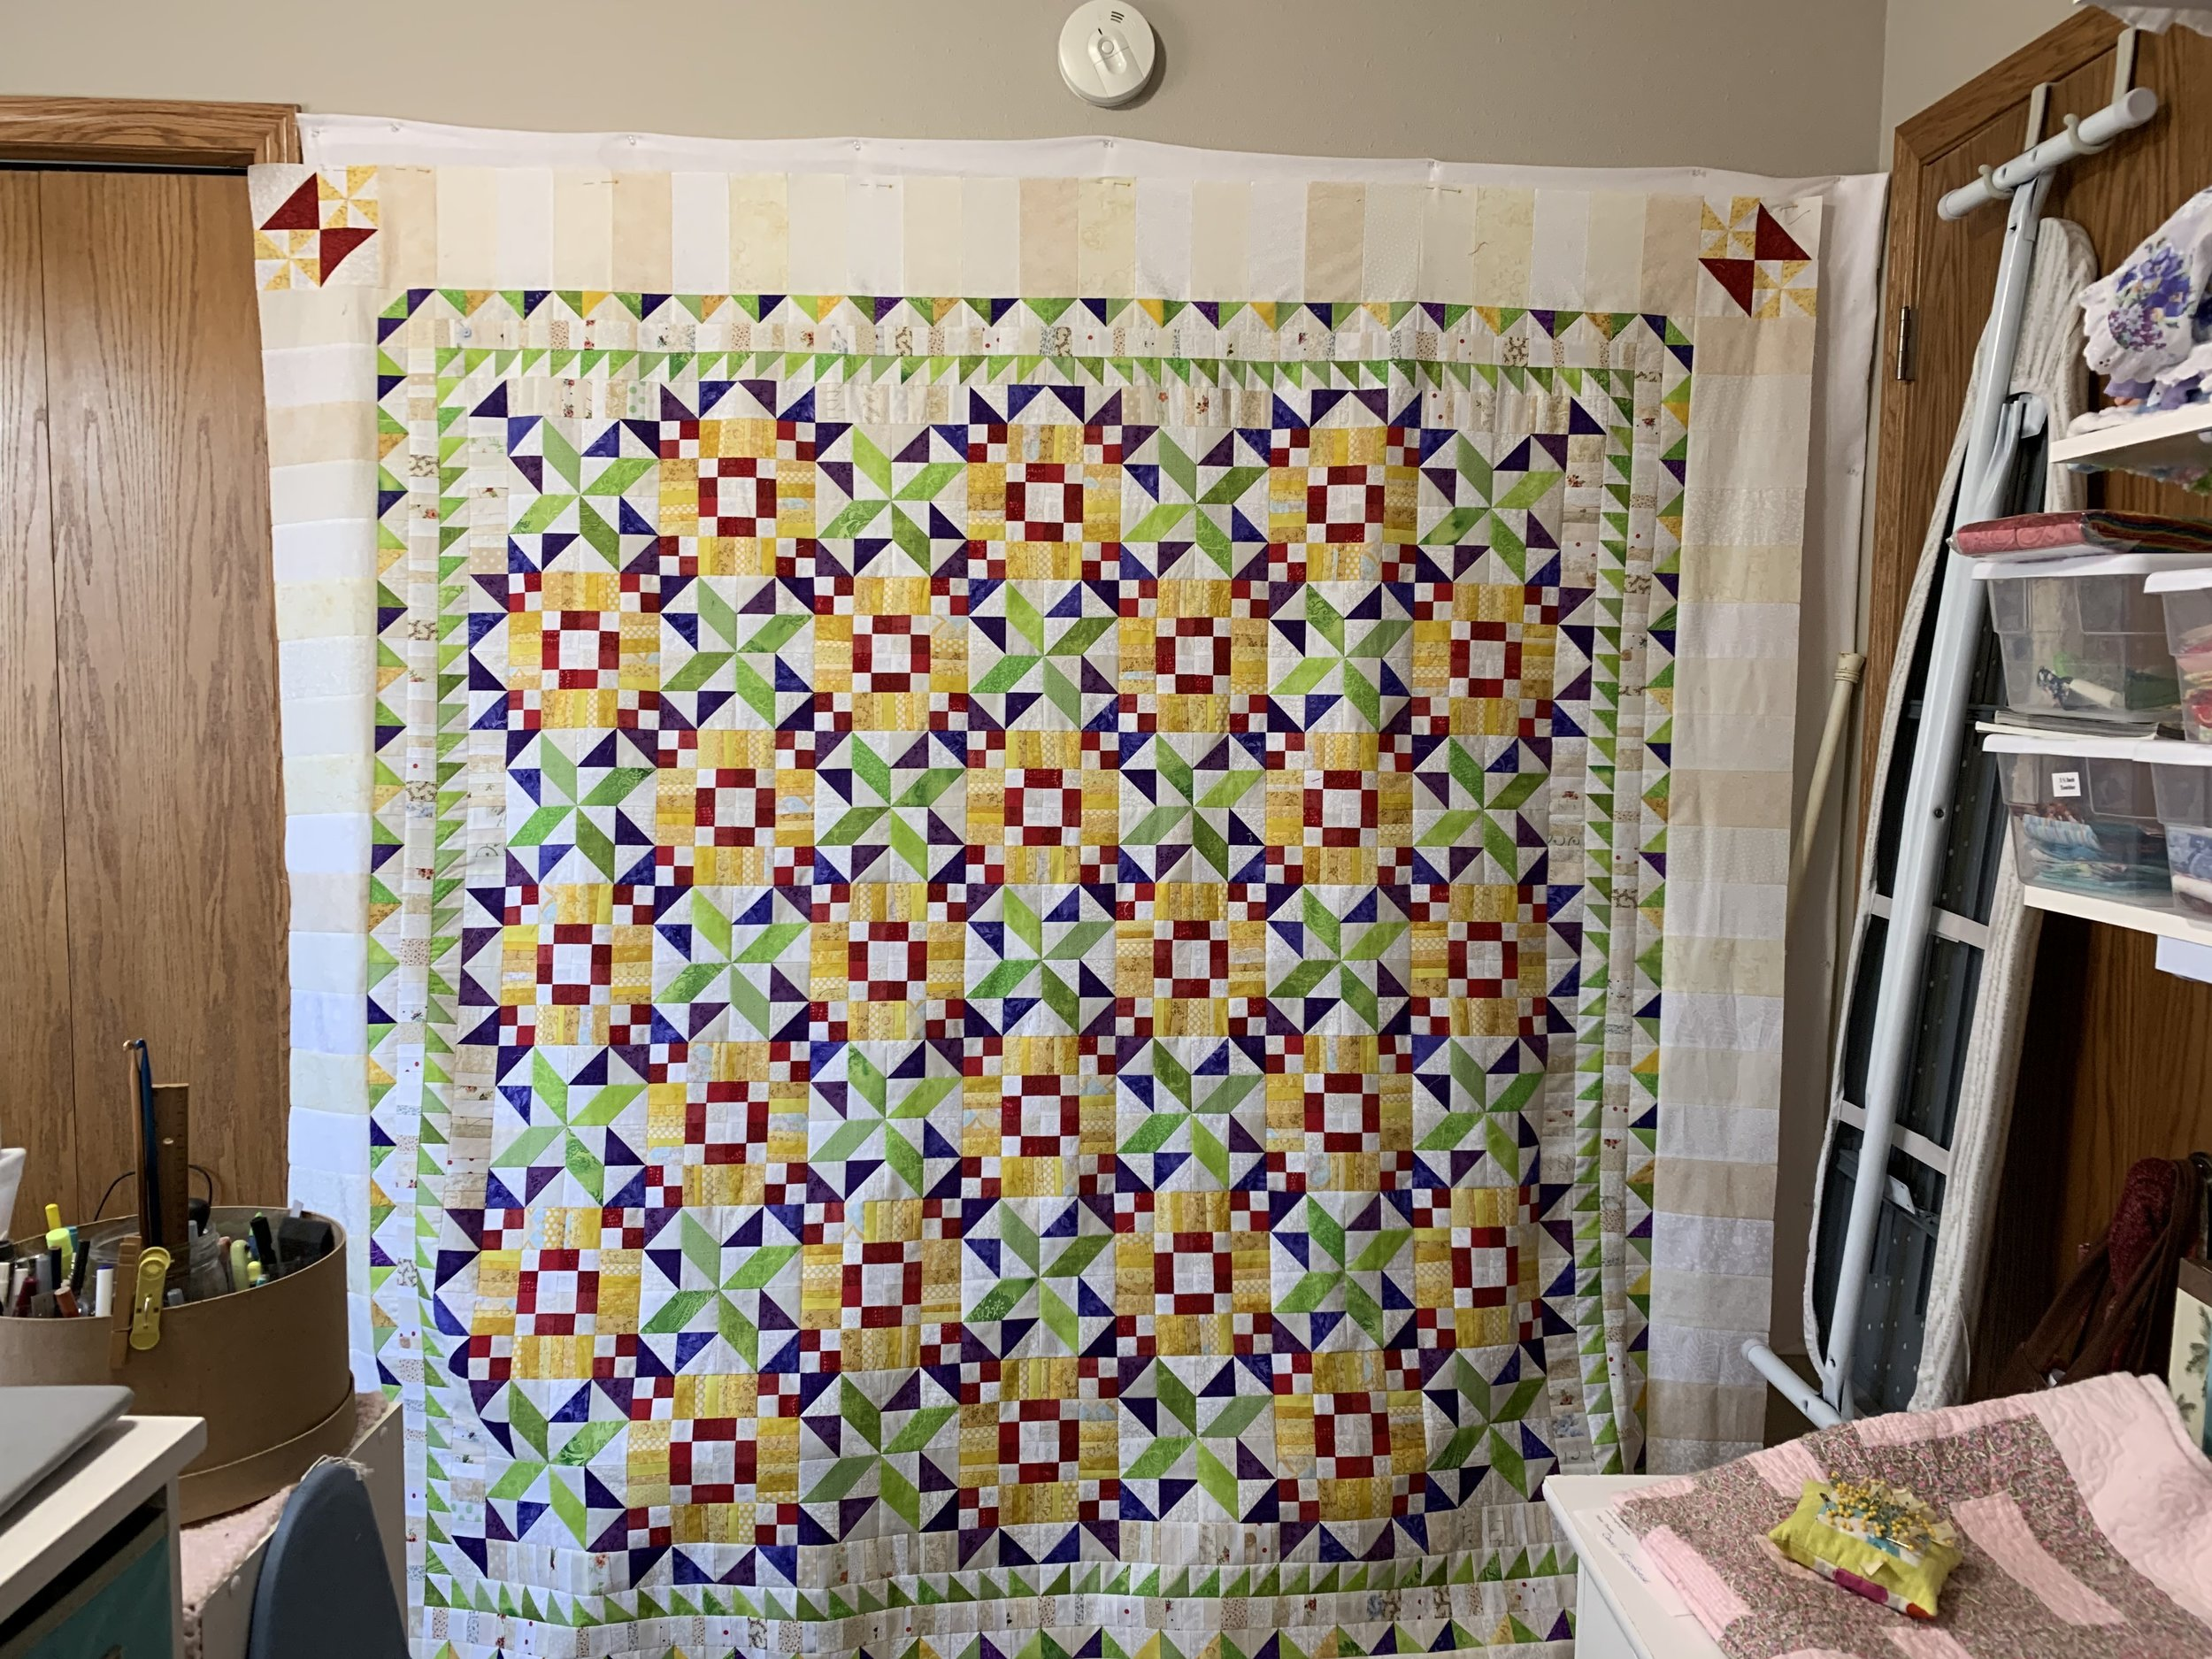 goodfortunequiltfinishedtop